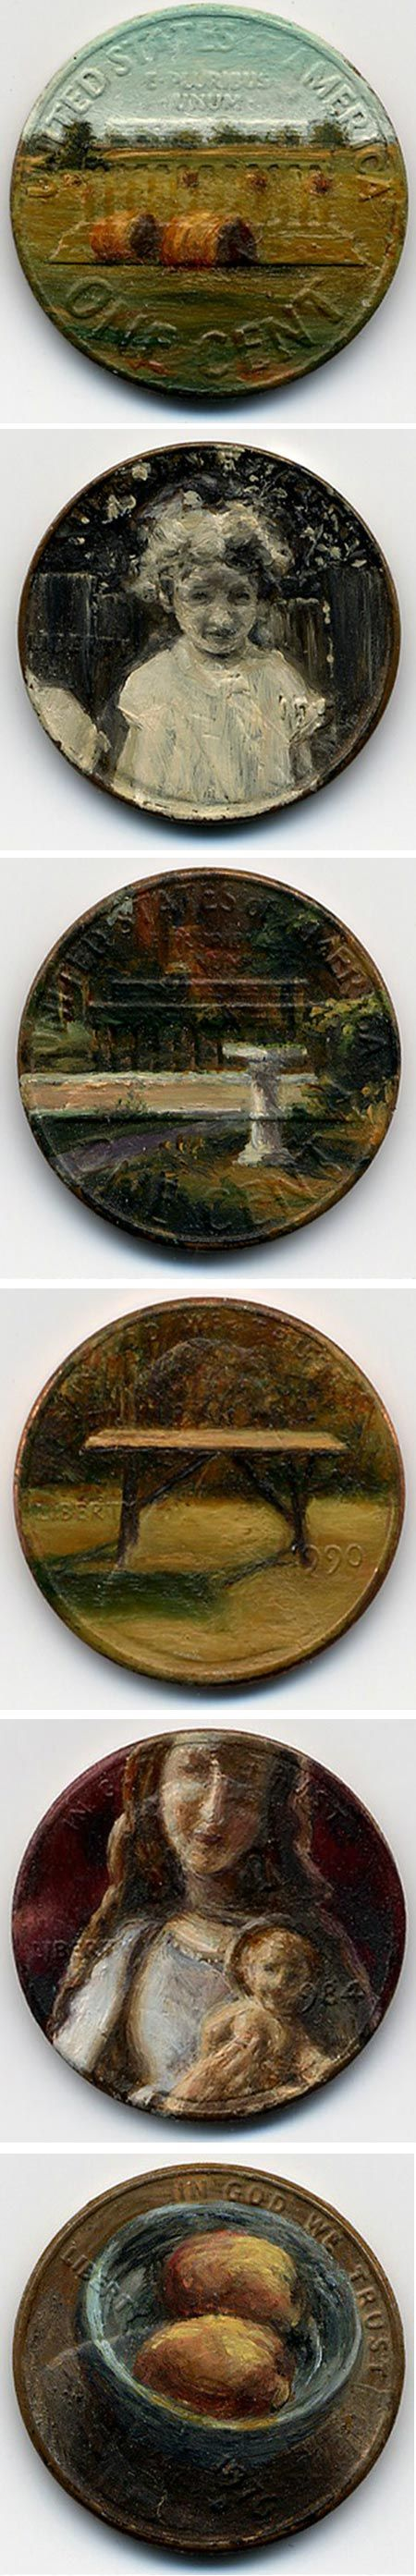 Paintings on copper penny by Jacqueline Lou Skaggs. Incredible.